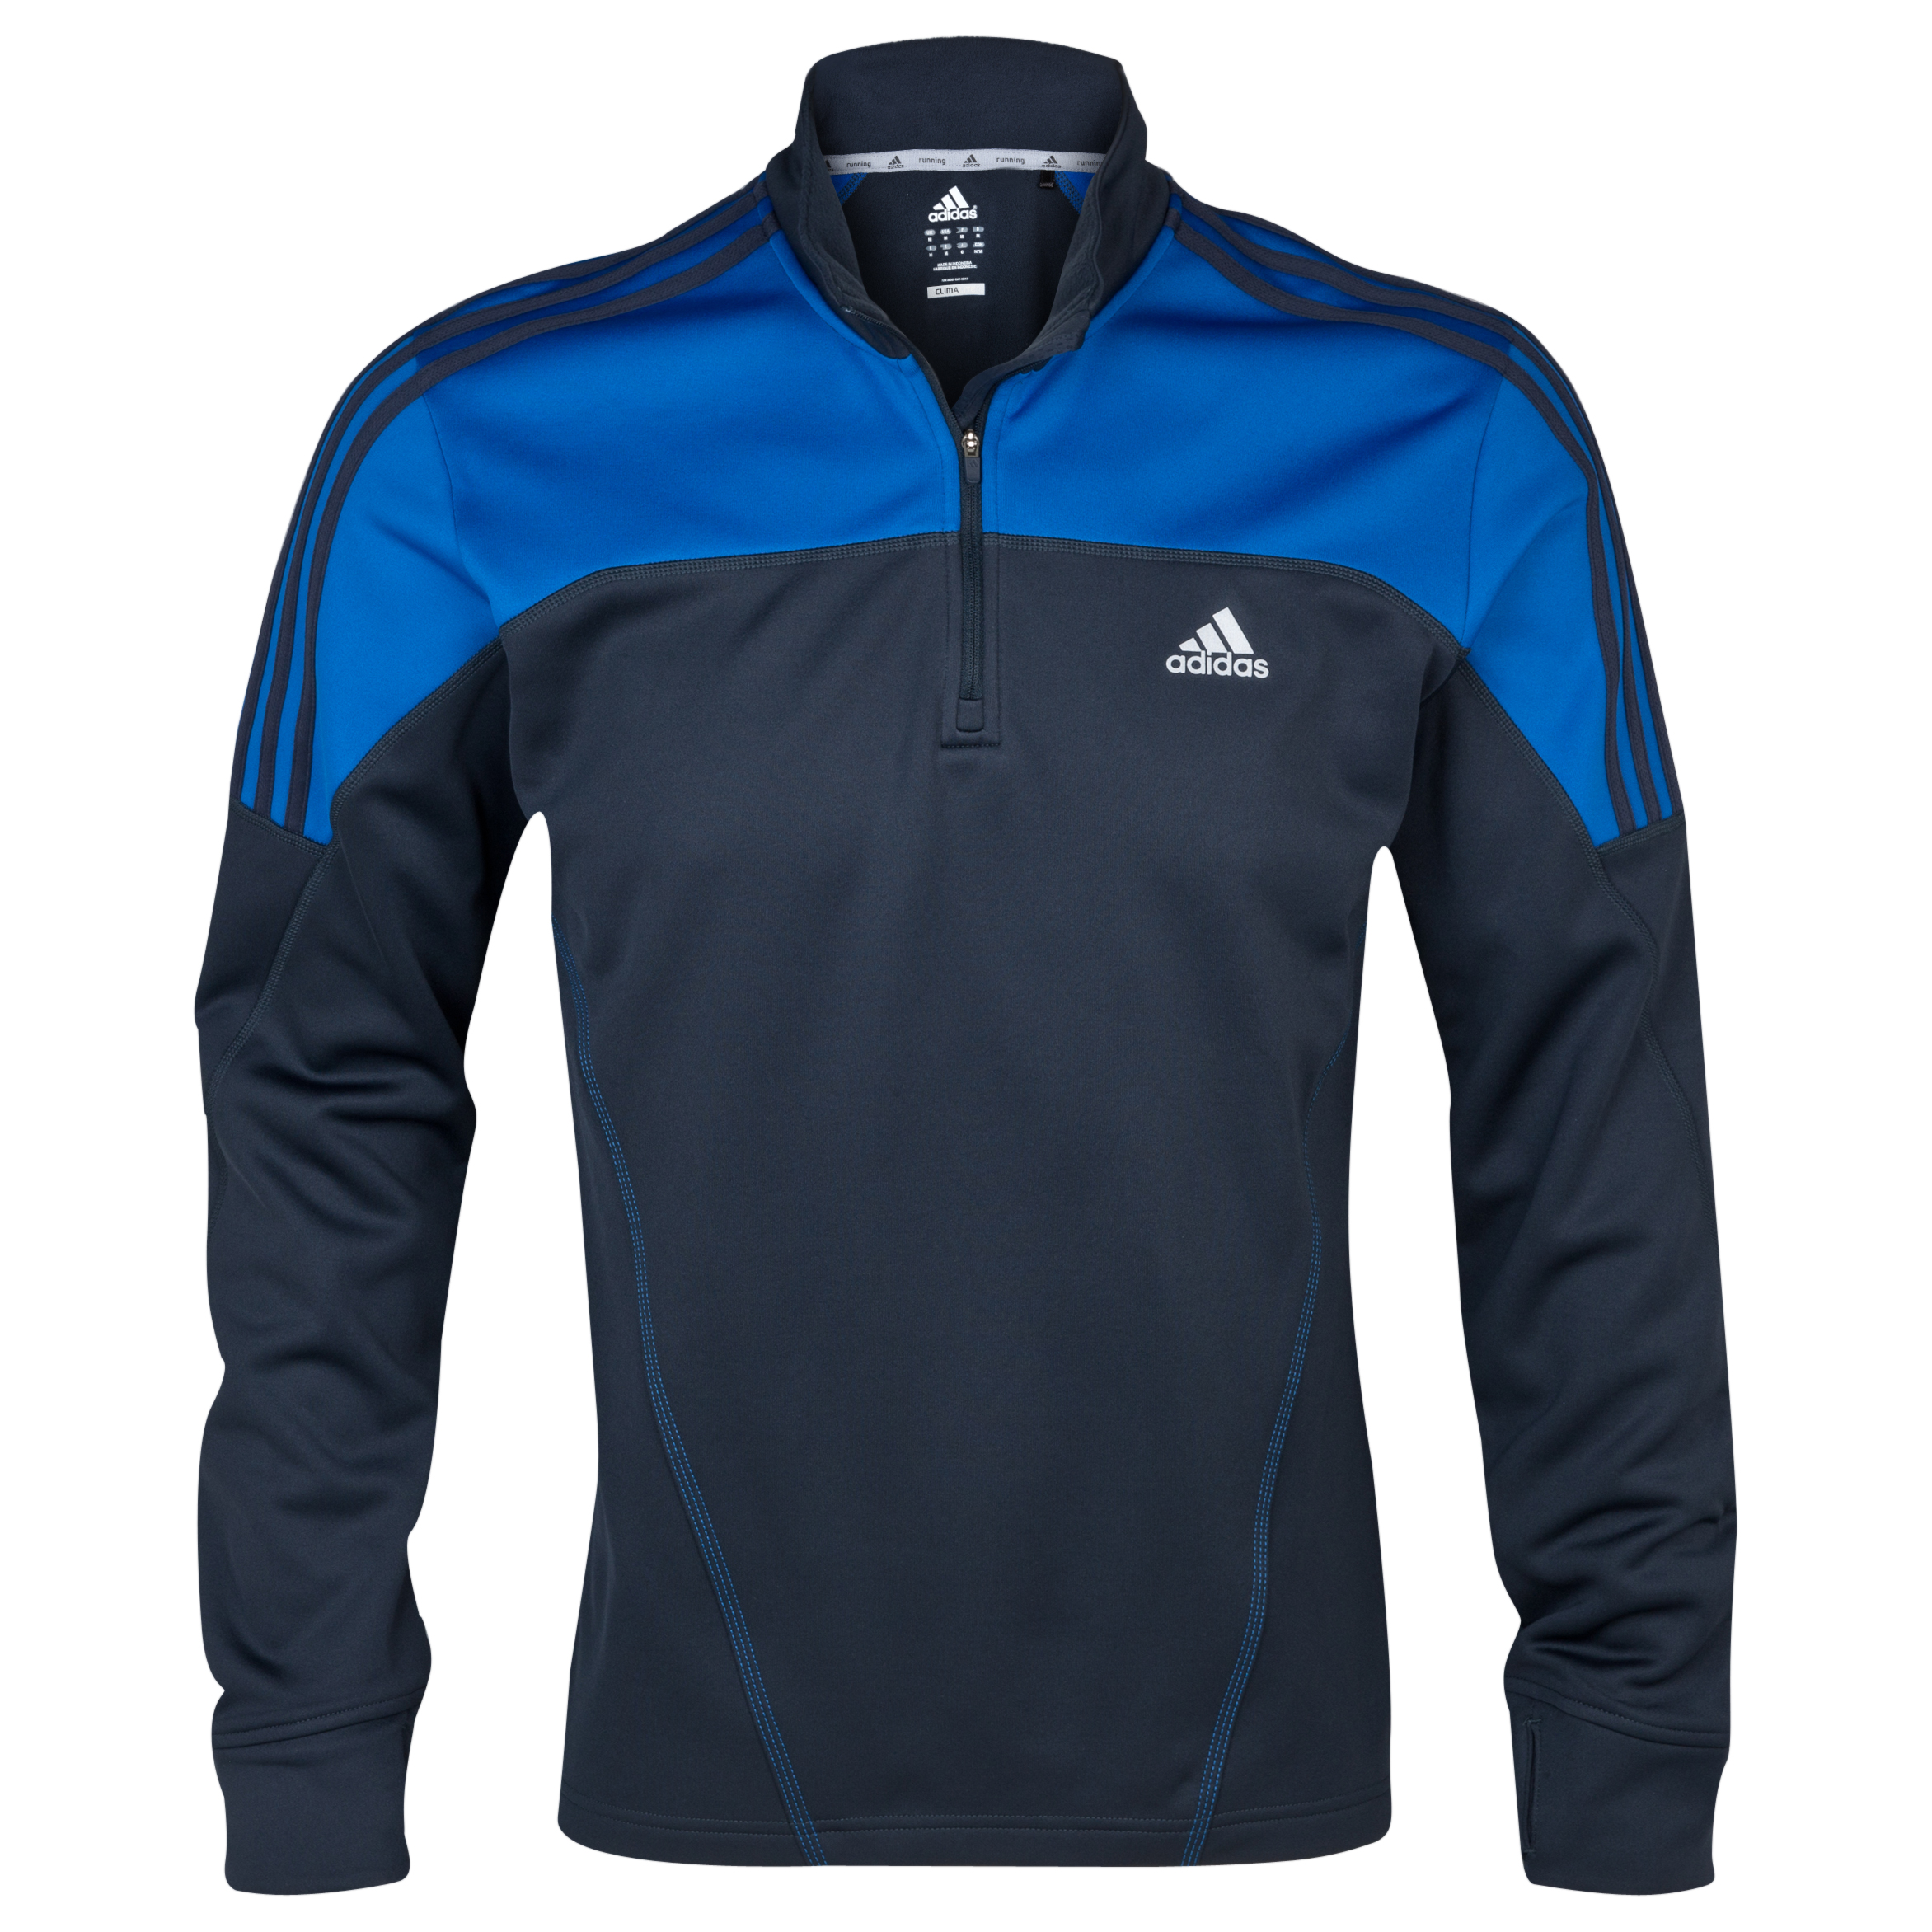 Adidas Response DS Fleece LS Top - Night Shade/Blue Beauty Blue